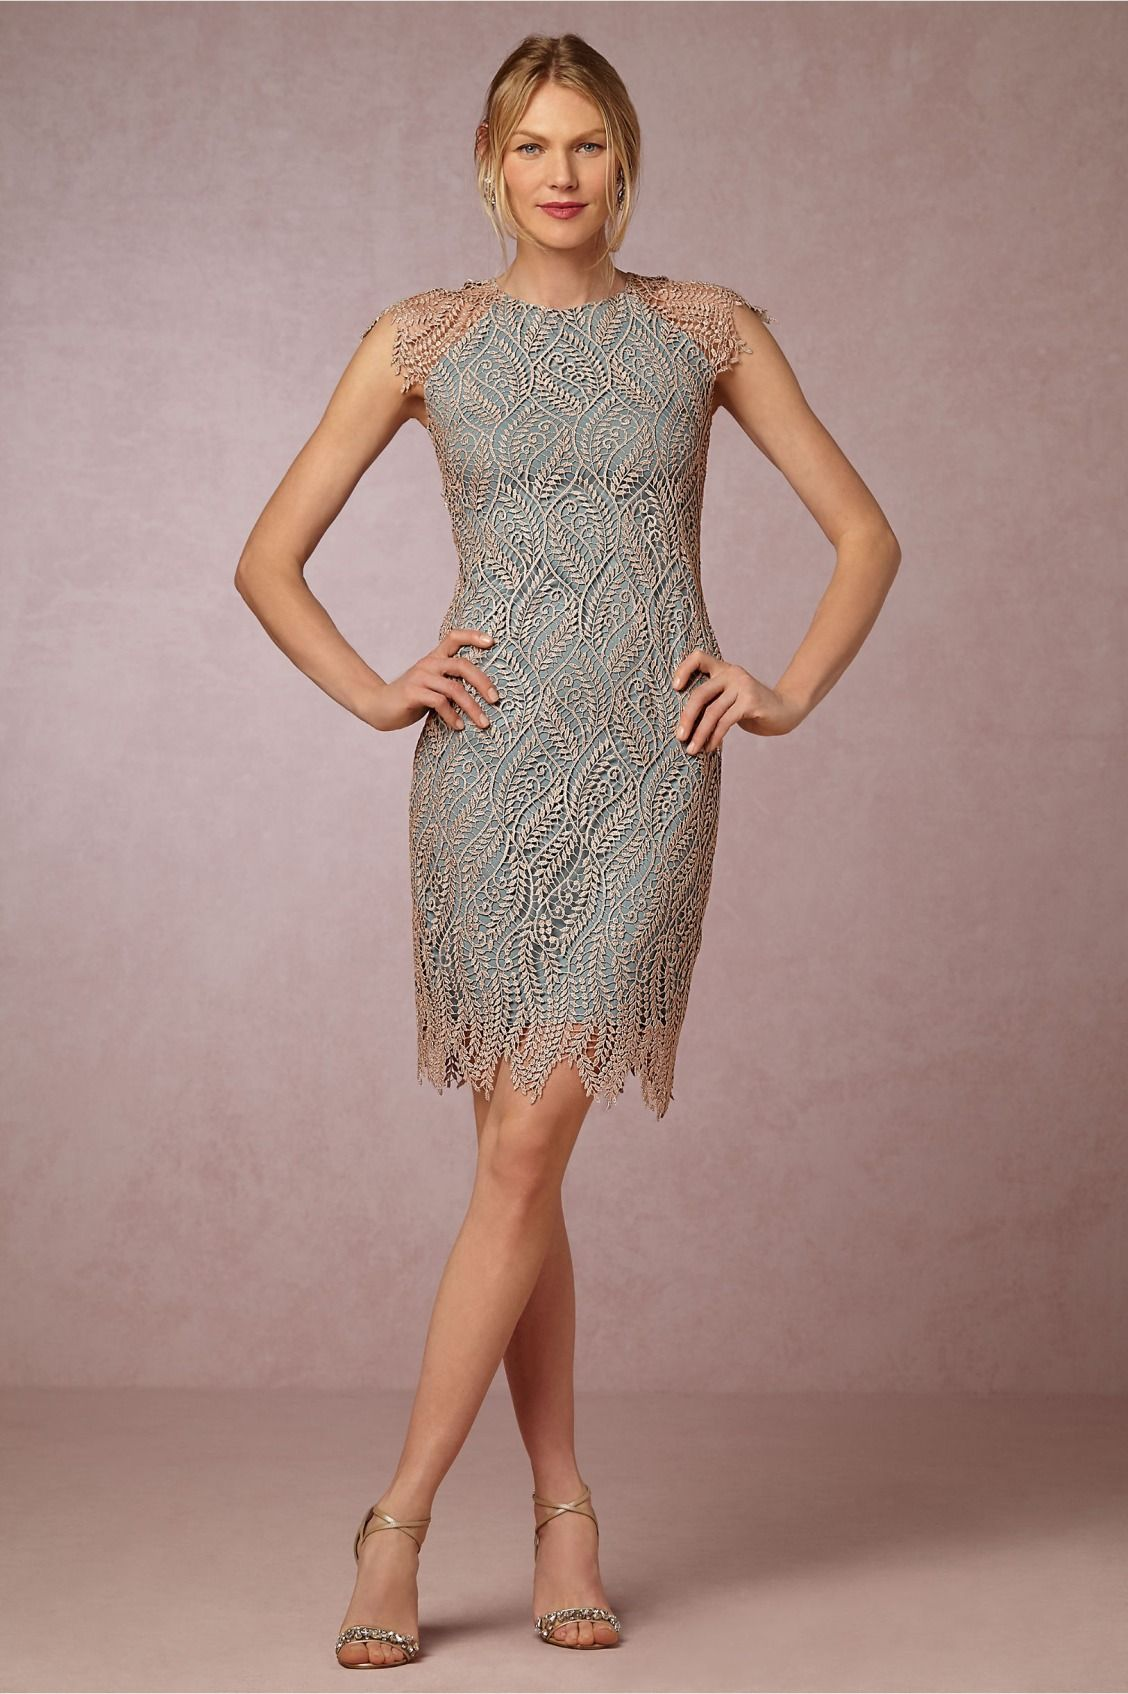 winter celebration ready | Pierre Dress from BHLDN | Special ...